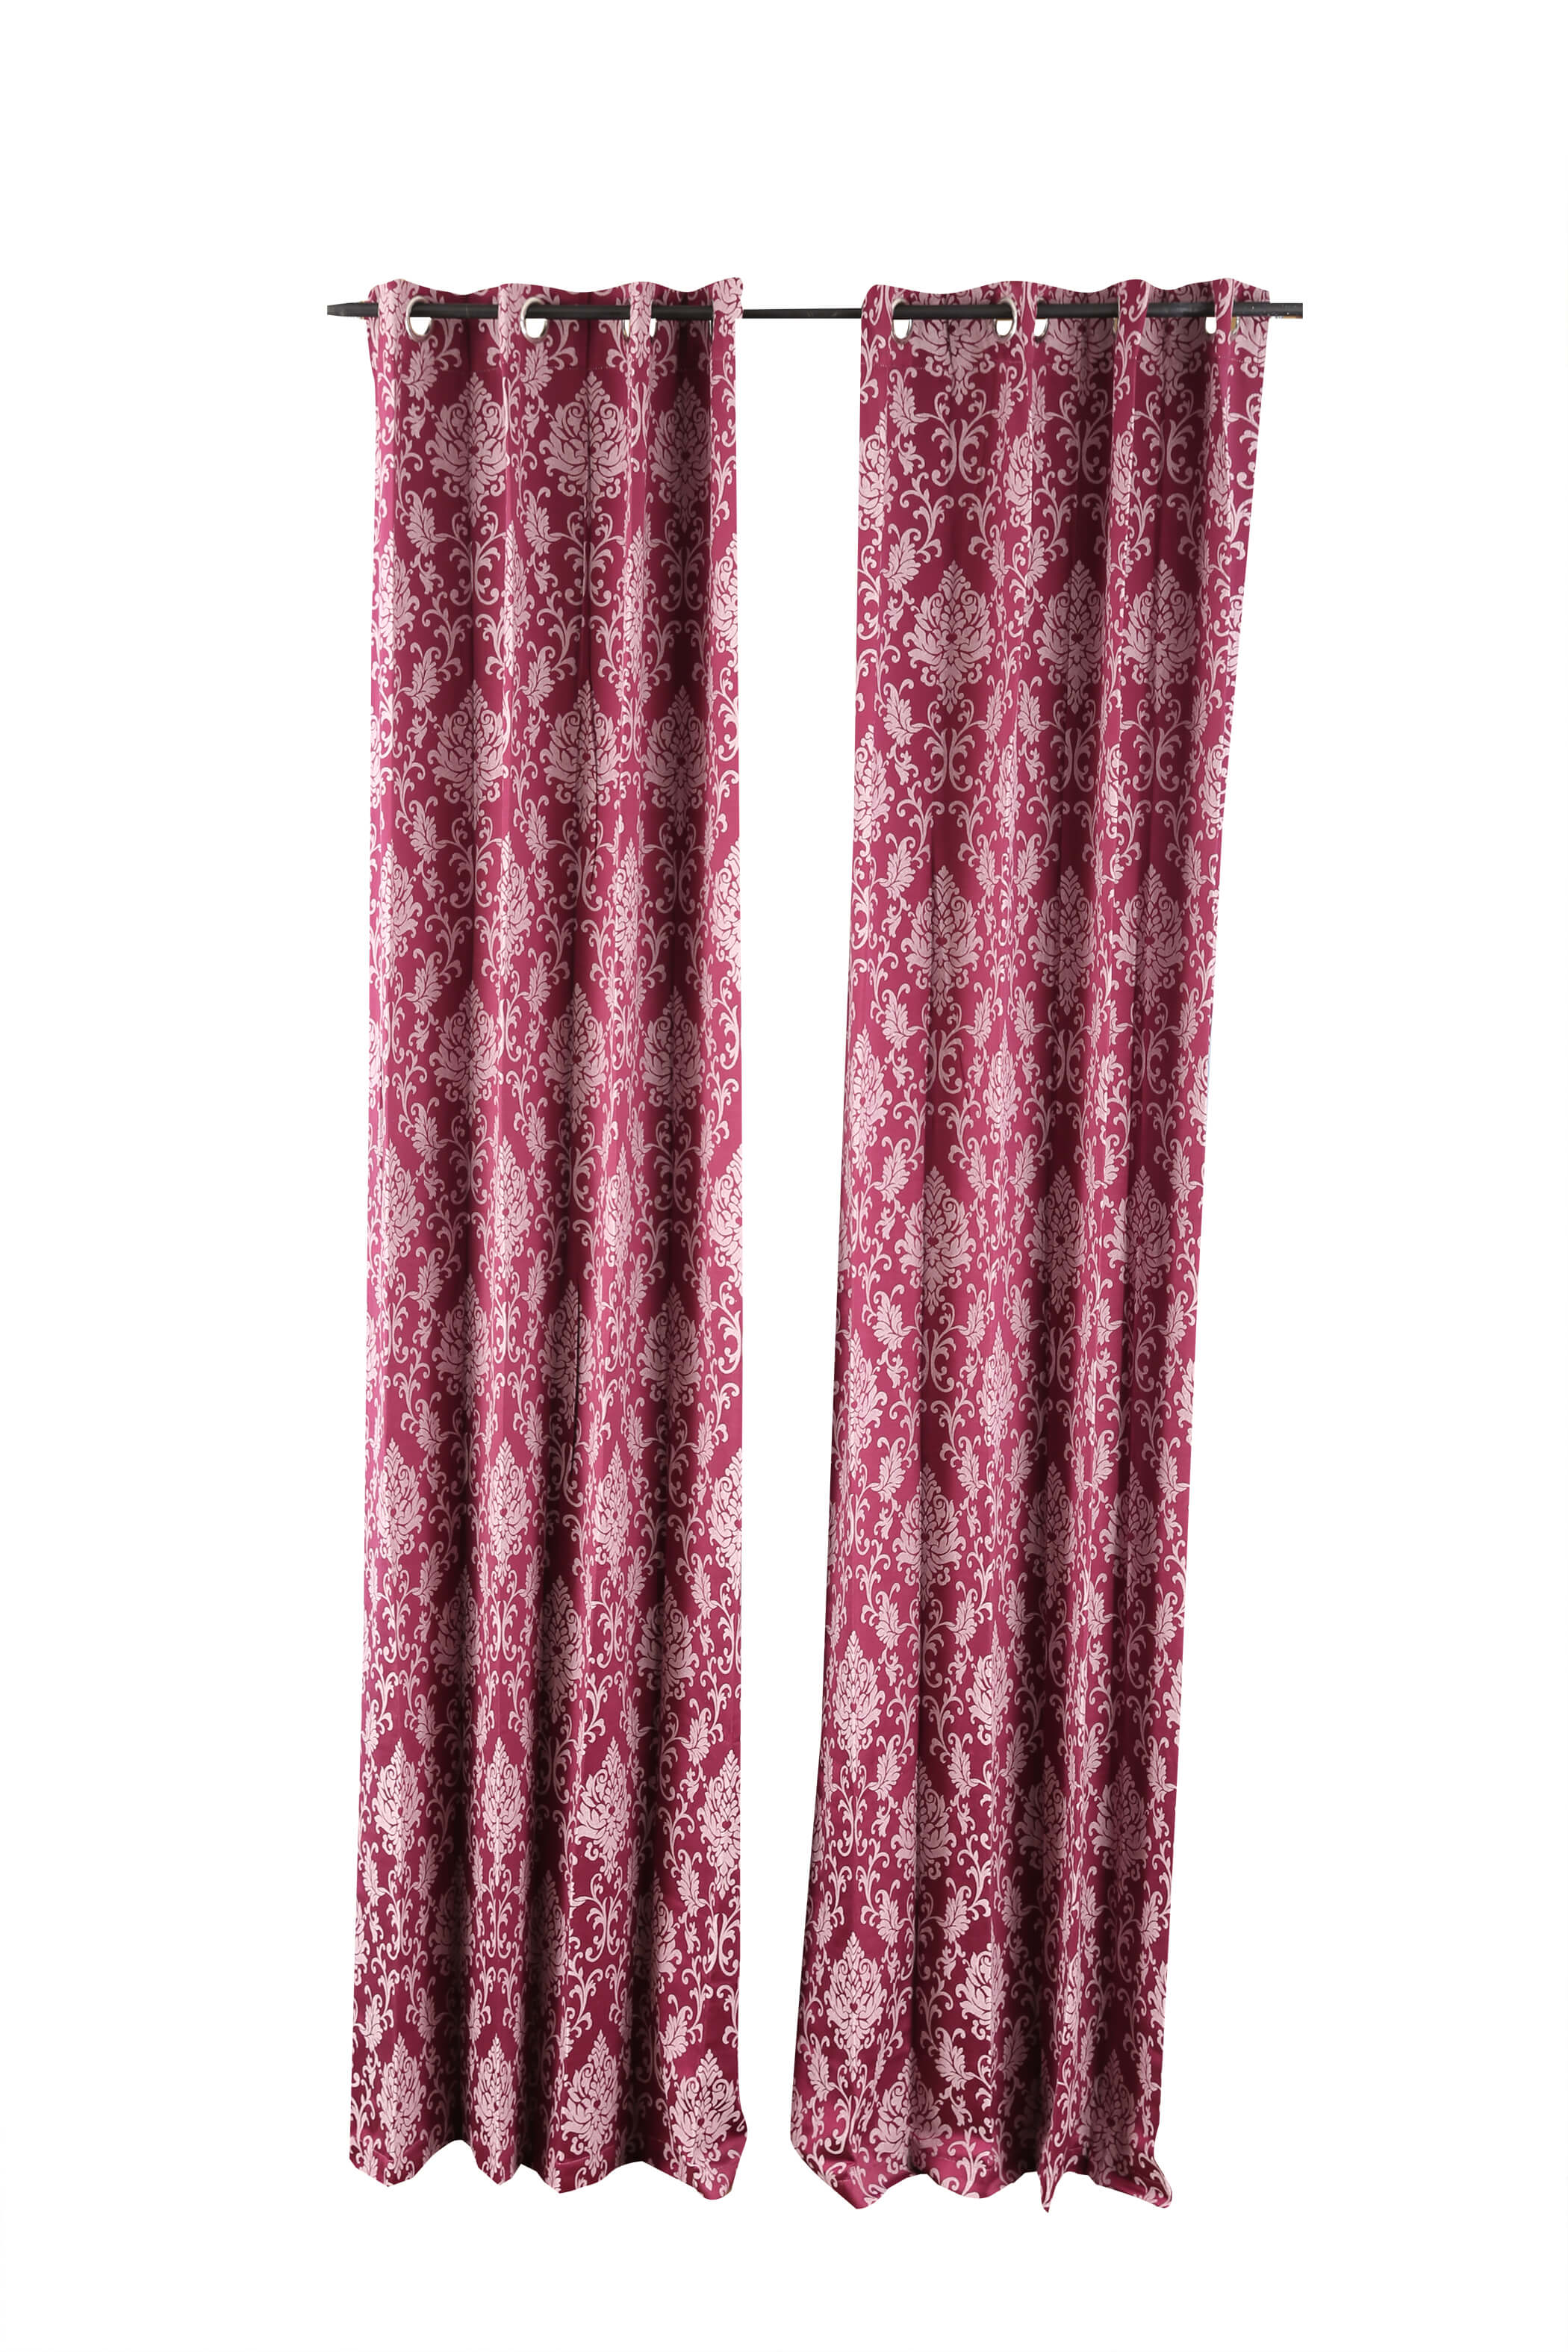 Florina Polyester Door Curtains in Wine Colour by Living Essence